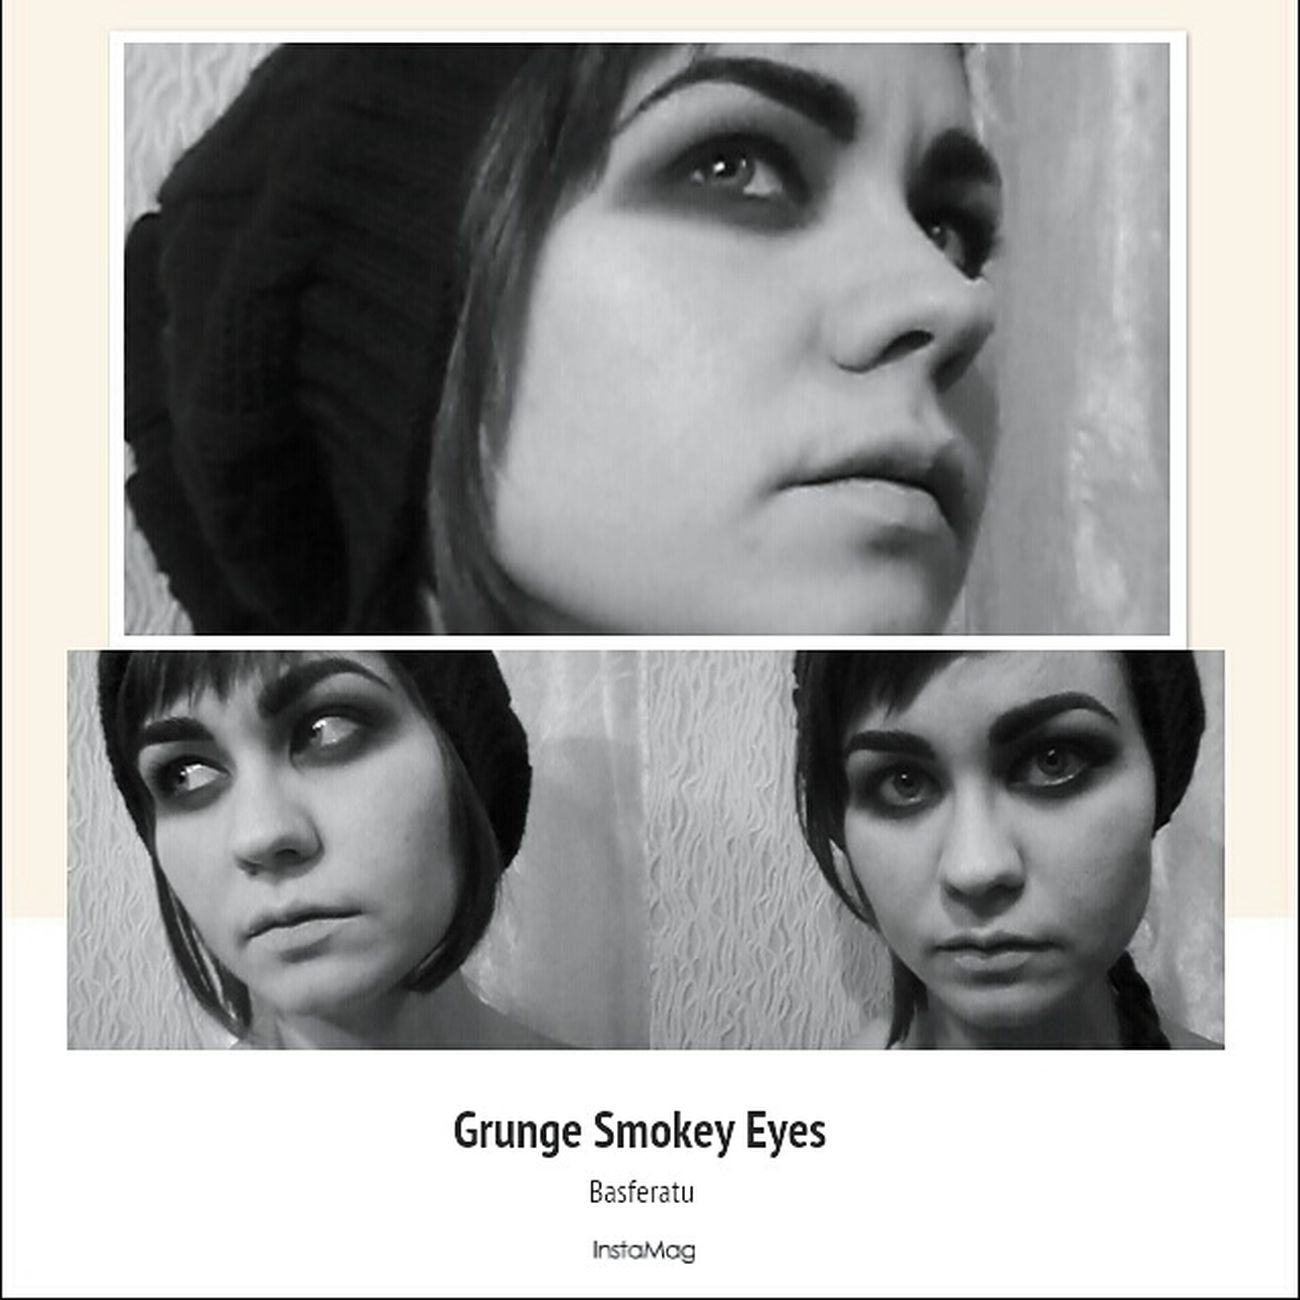 That's Me Make Up Makeup Artist Grunge Grunge Makeup Grungegirl GrungeStyle Hello World Face Of EyeEm Russian Girl